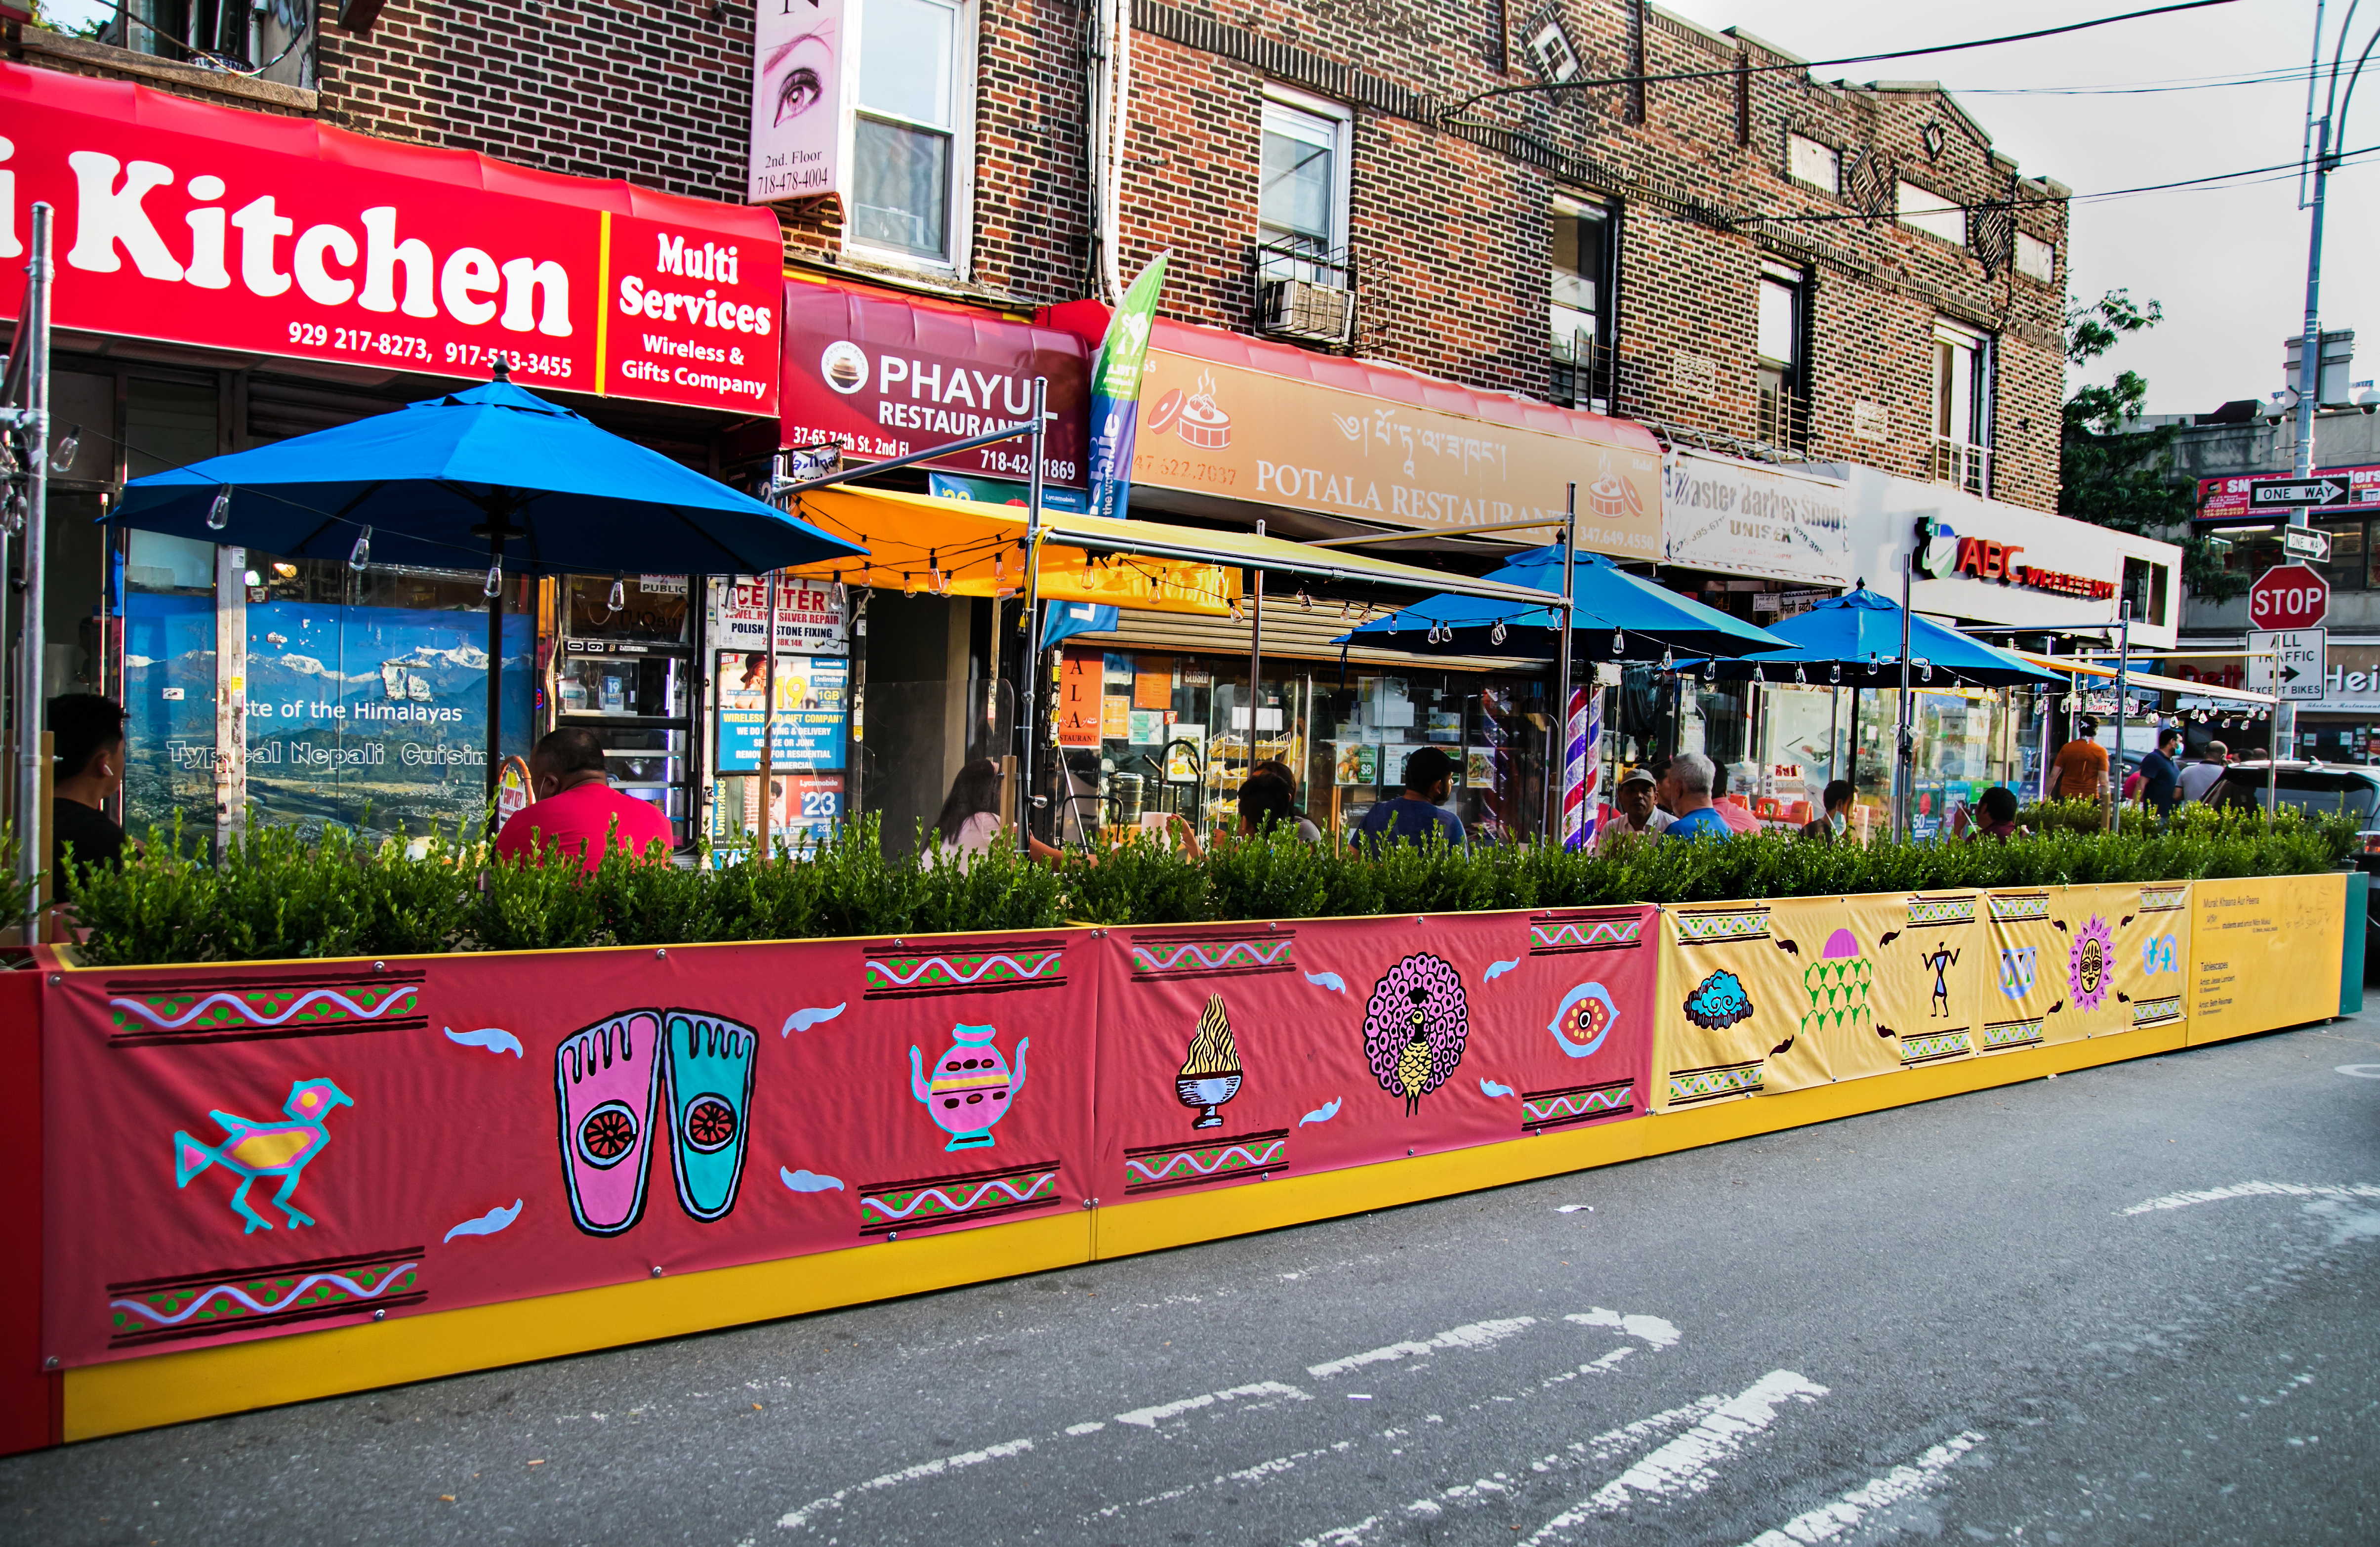 An exterior view of outdoor dining platforms built for restaurants during coronavirus. These brightly colored streeteries were designed by DineOut NYC.